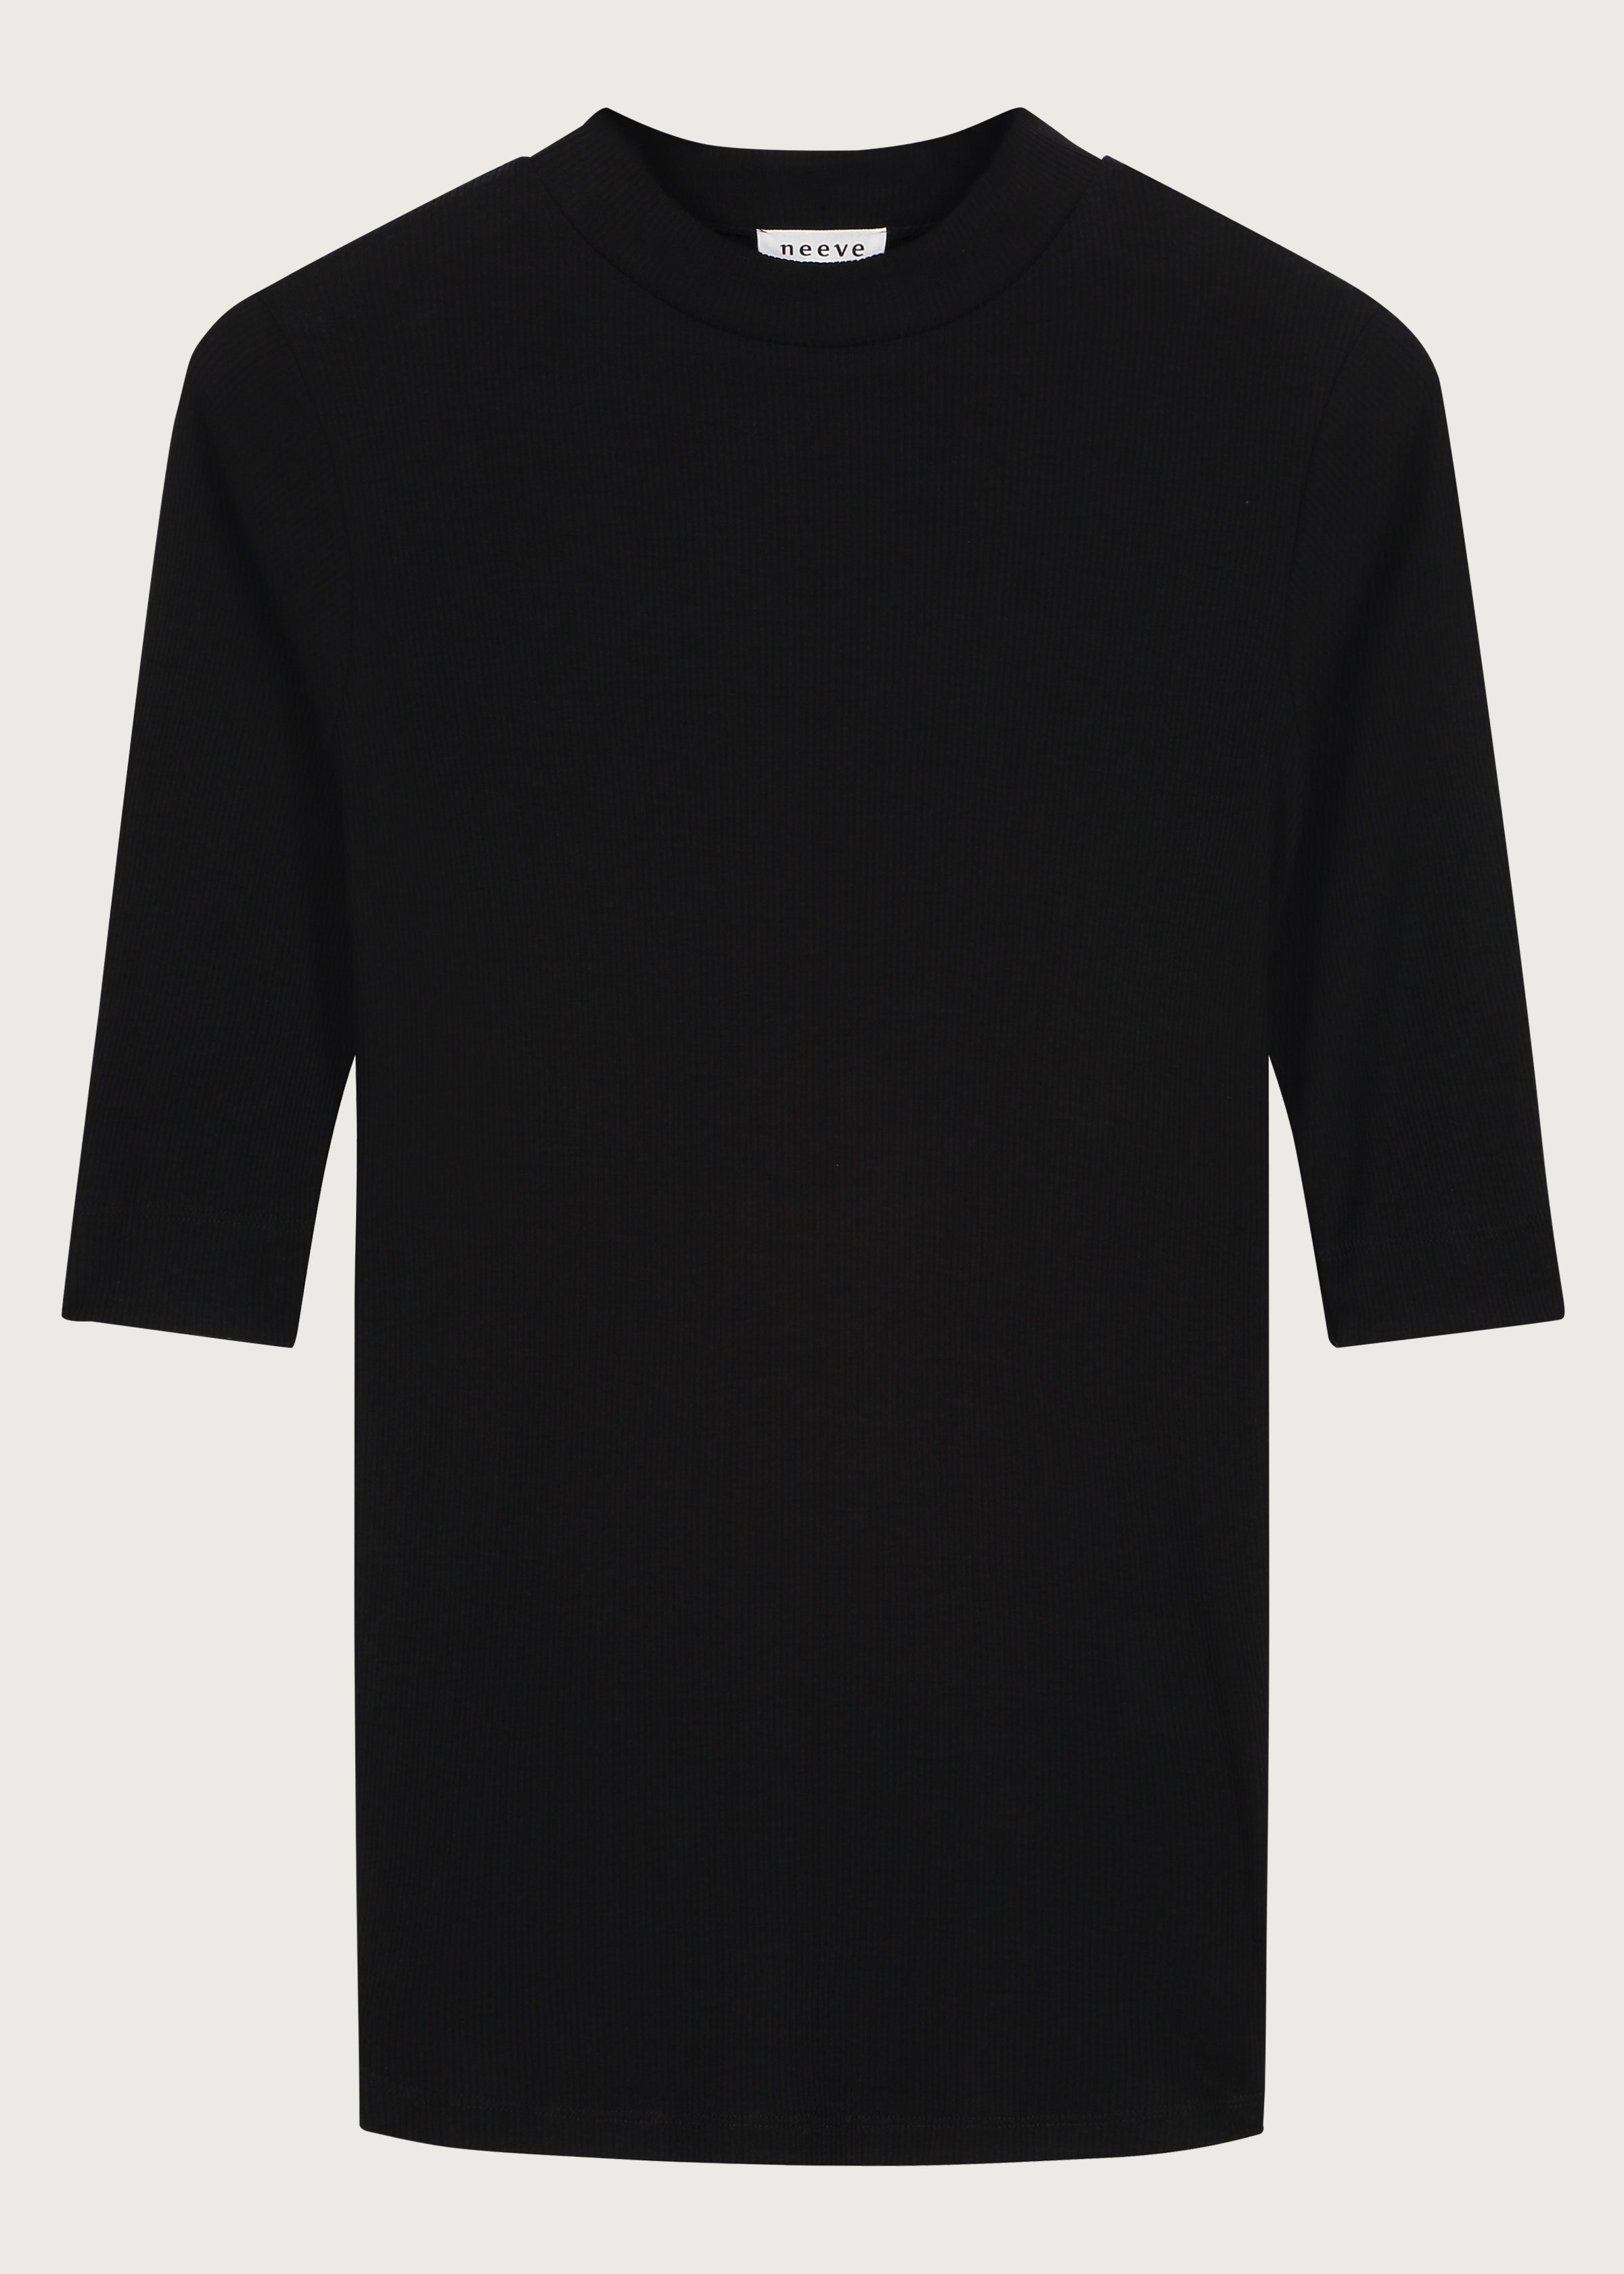 The Ribbed Tee